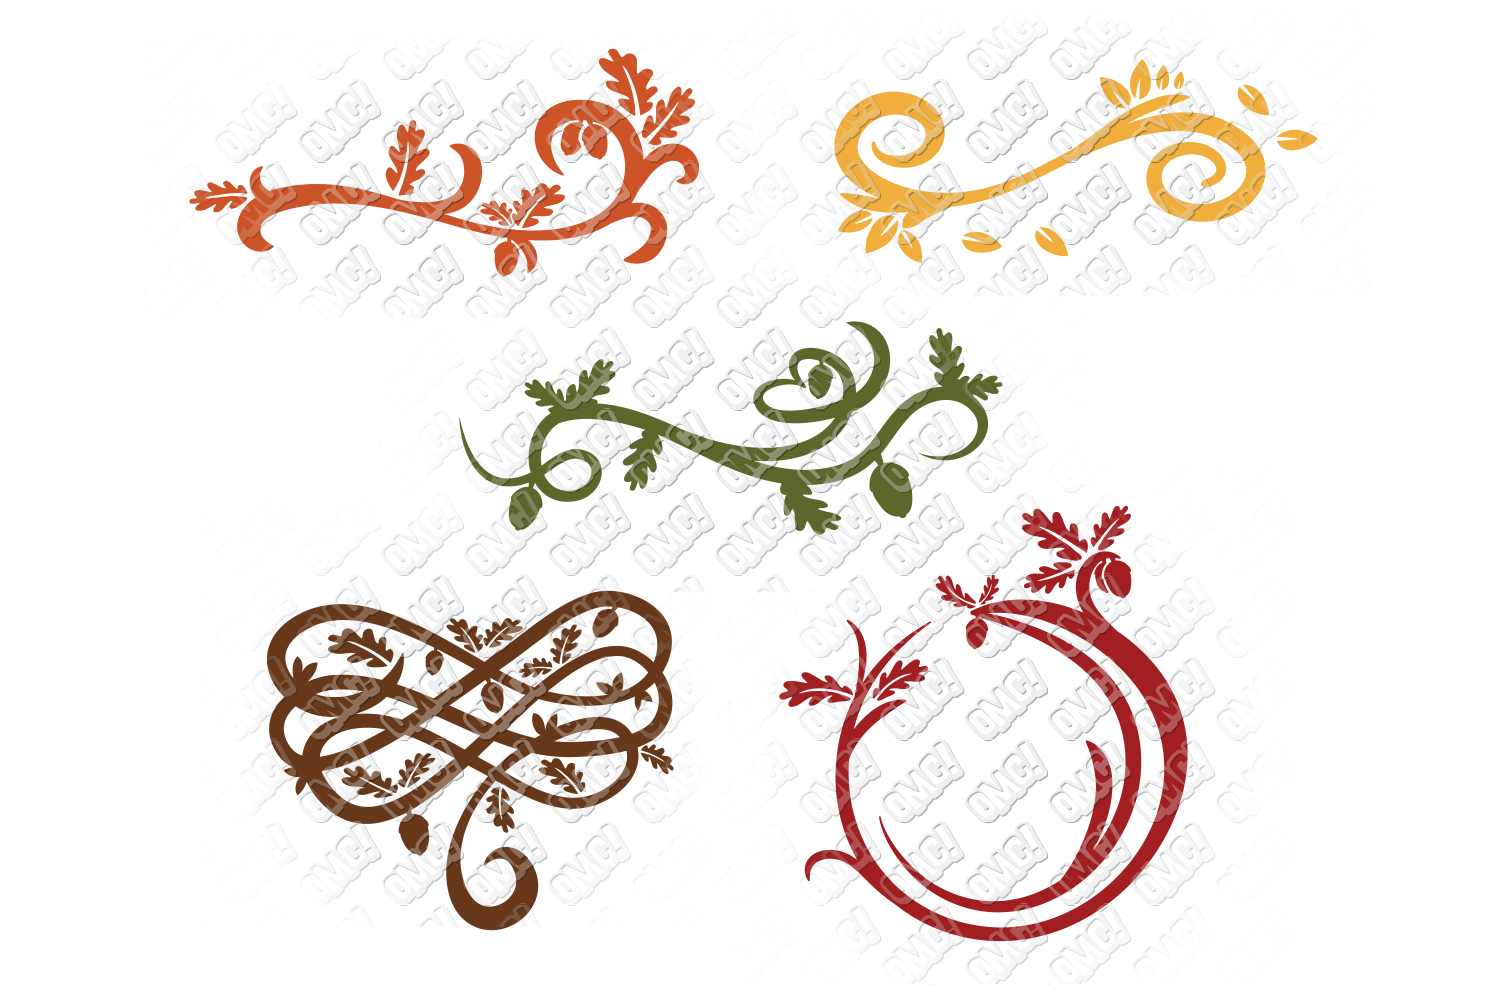 Fall Flourish SVG Monogram Border in SVG, DXF, PNG, EPS, JPG example image 2